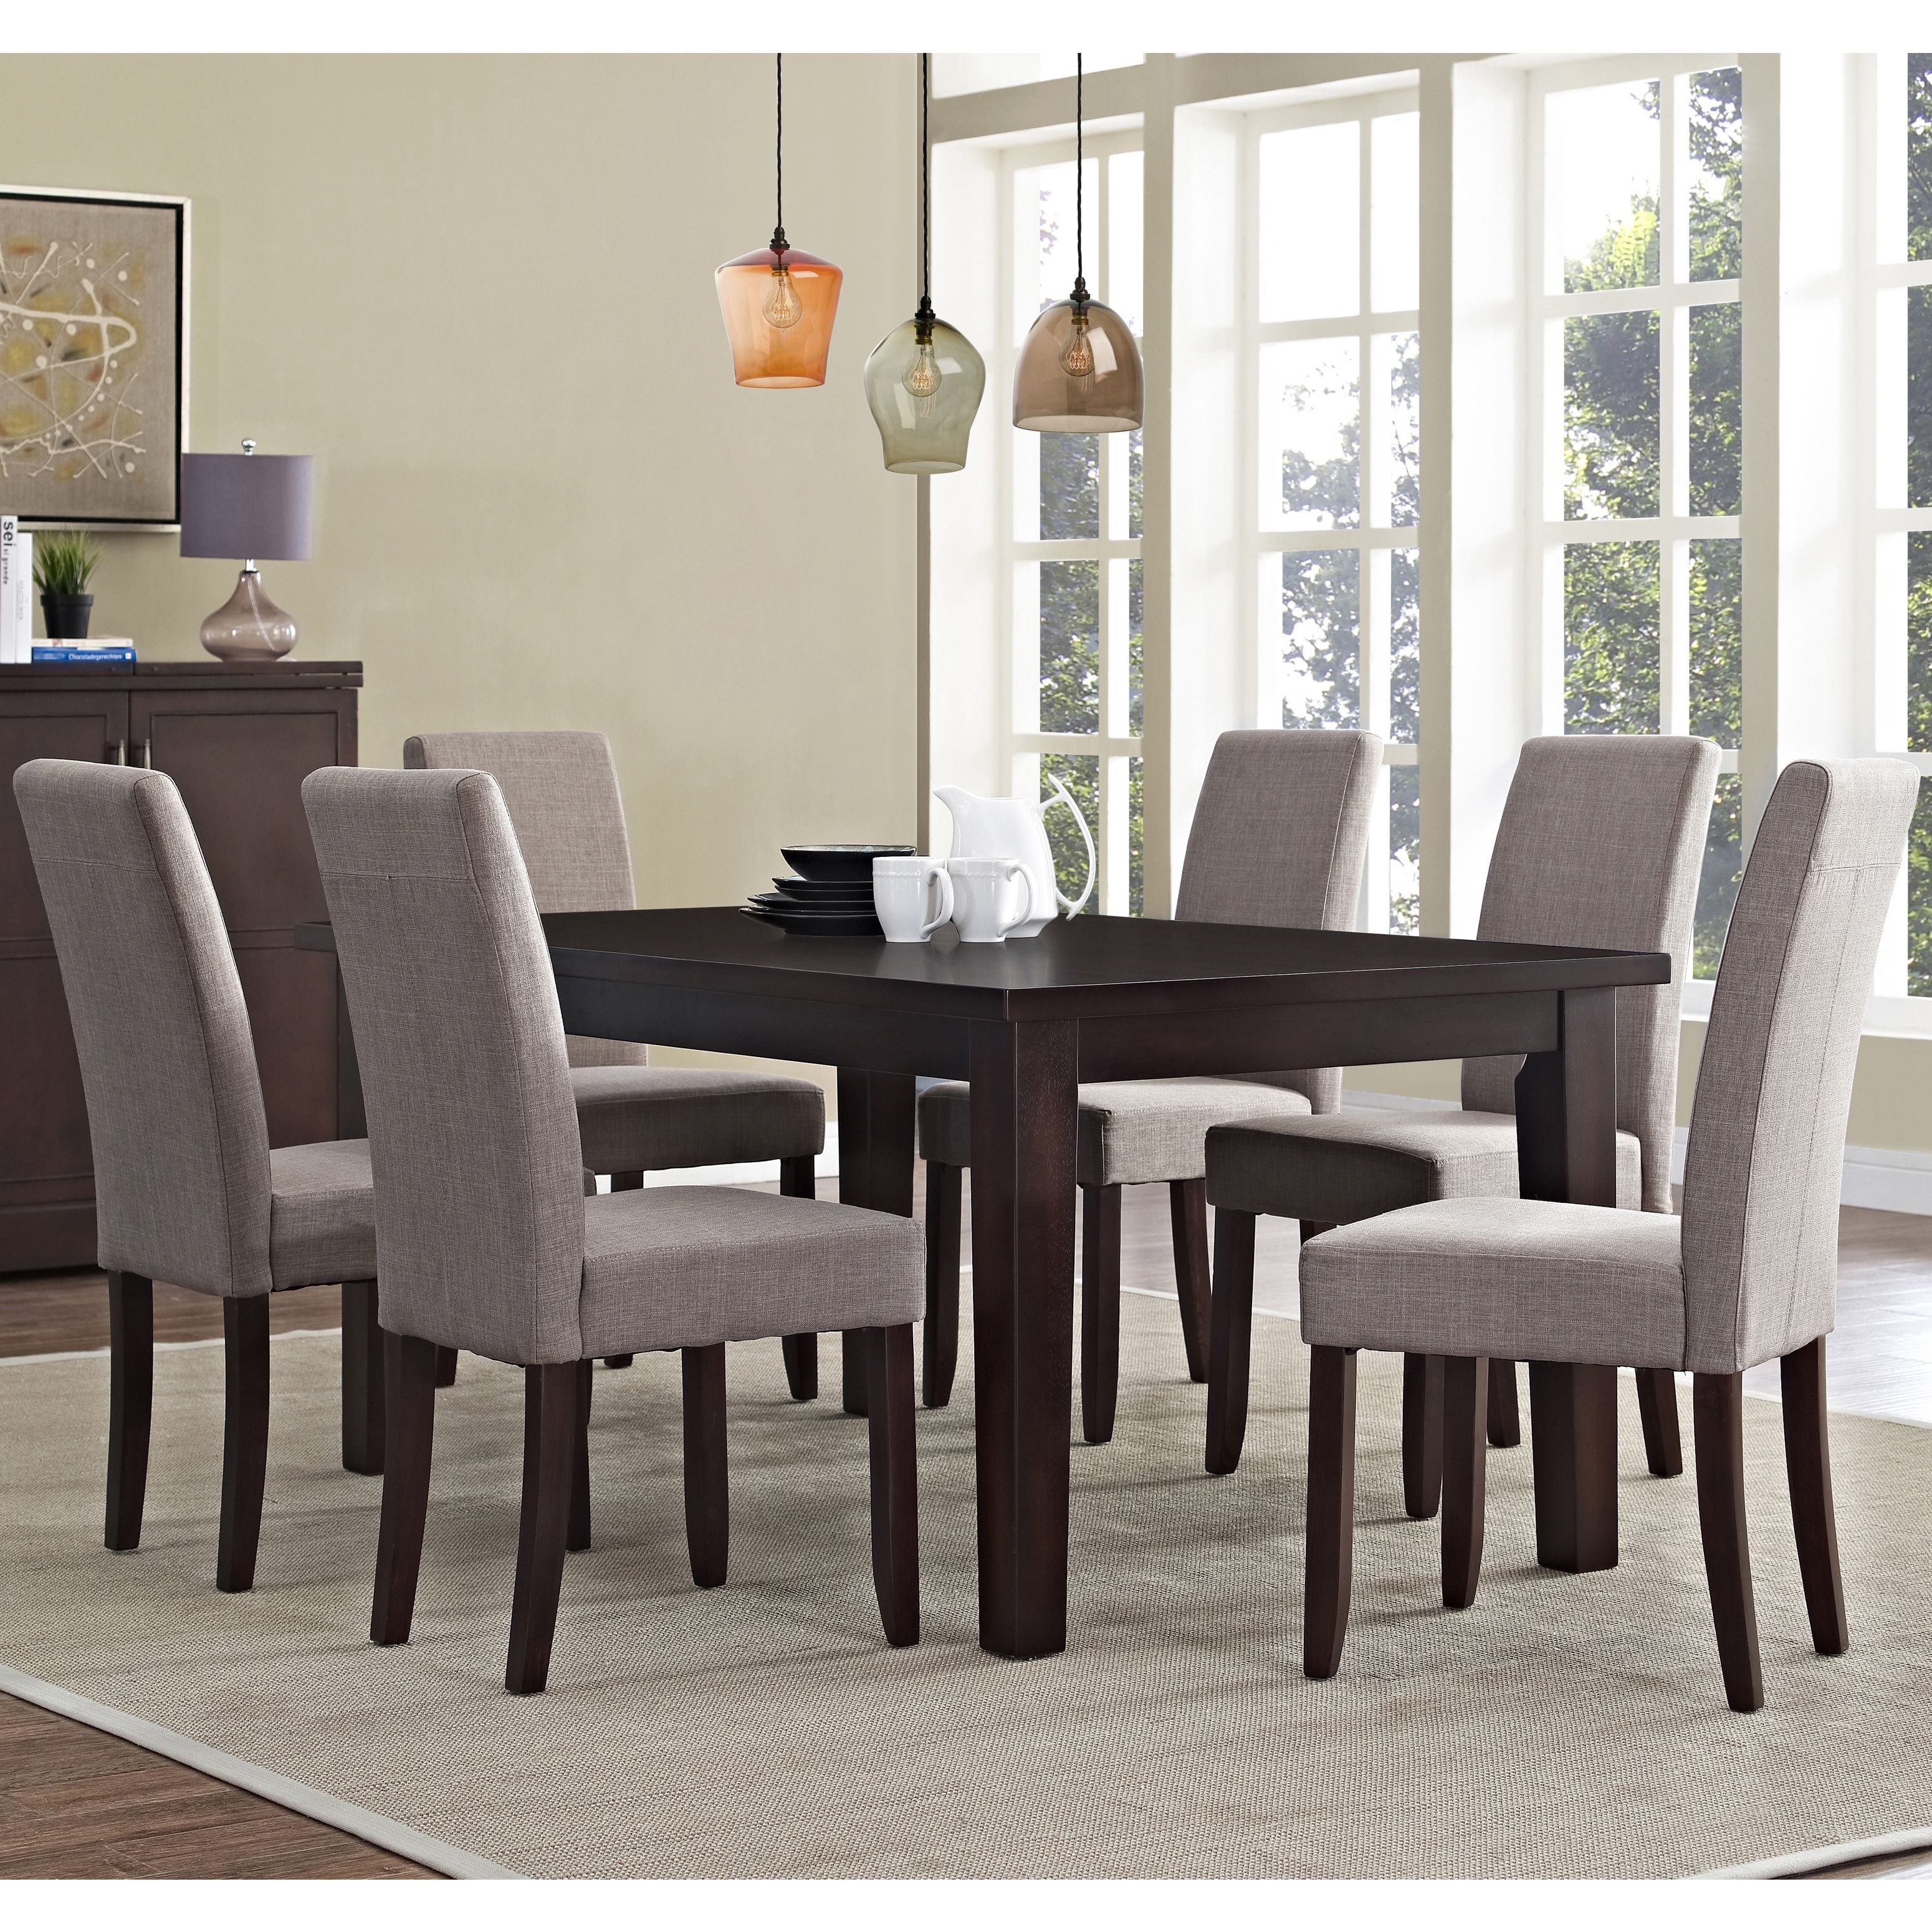 Tremendous Dine In Sophisticated Style With This 7 Piece Wydenhall Squirreltailoven Fun Painted Chair Ideas Images Squirreltailovenorg